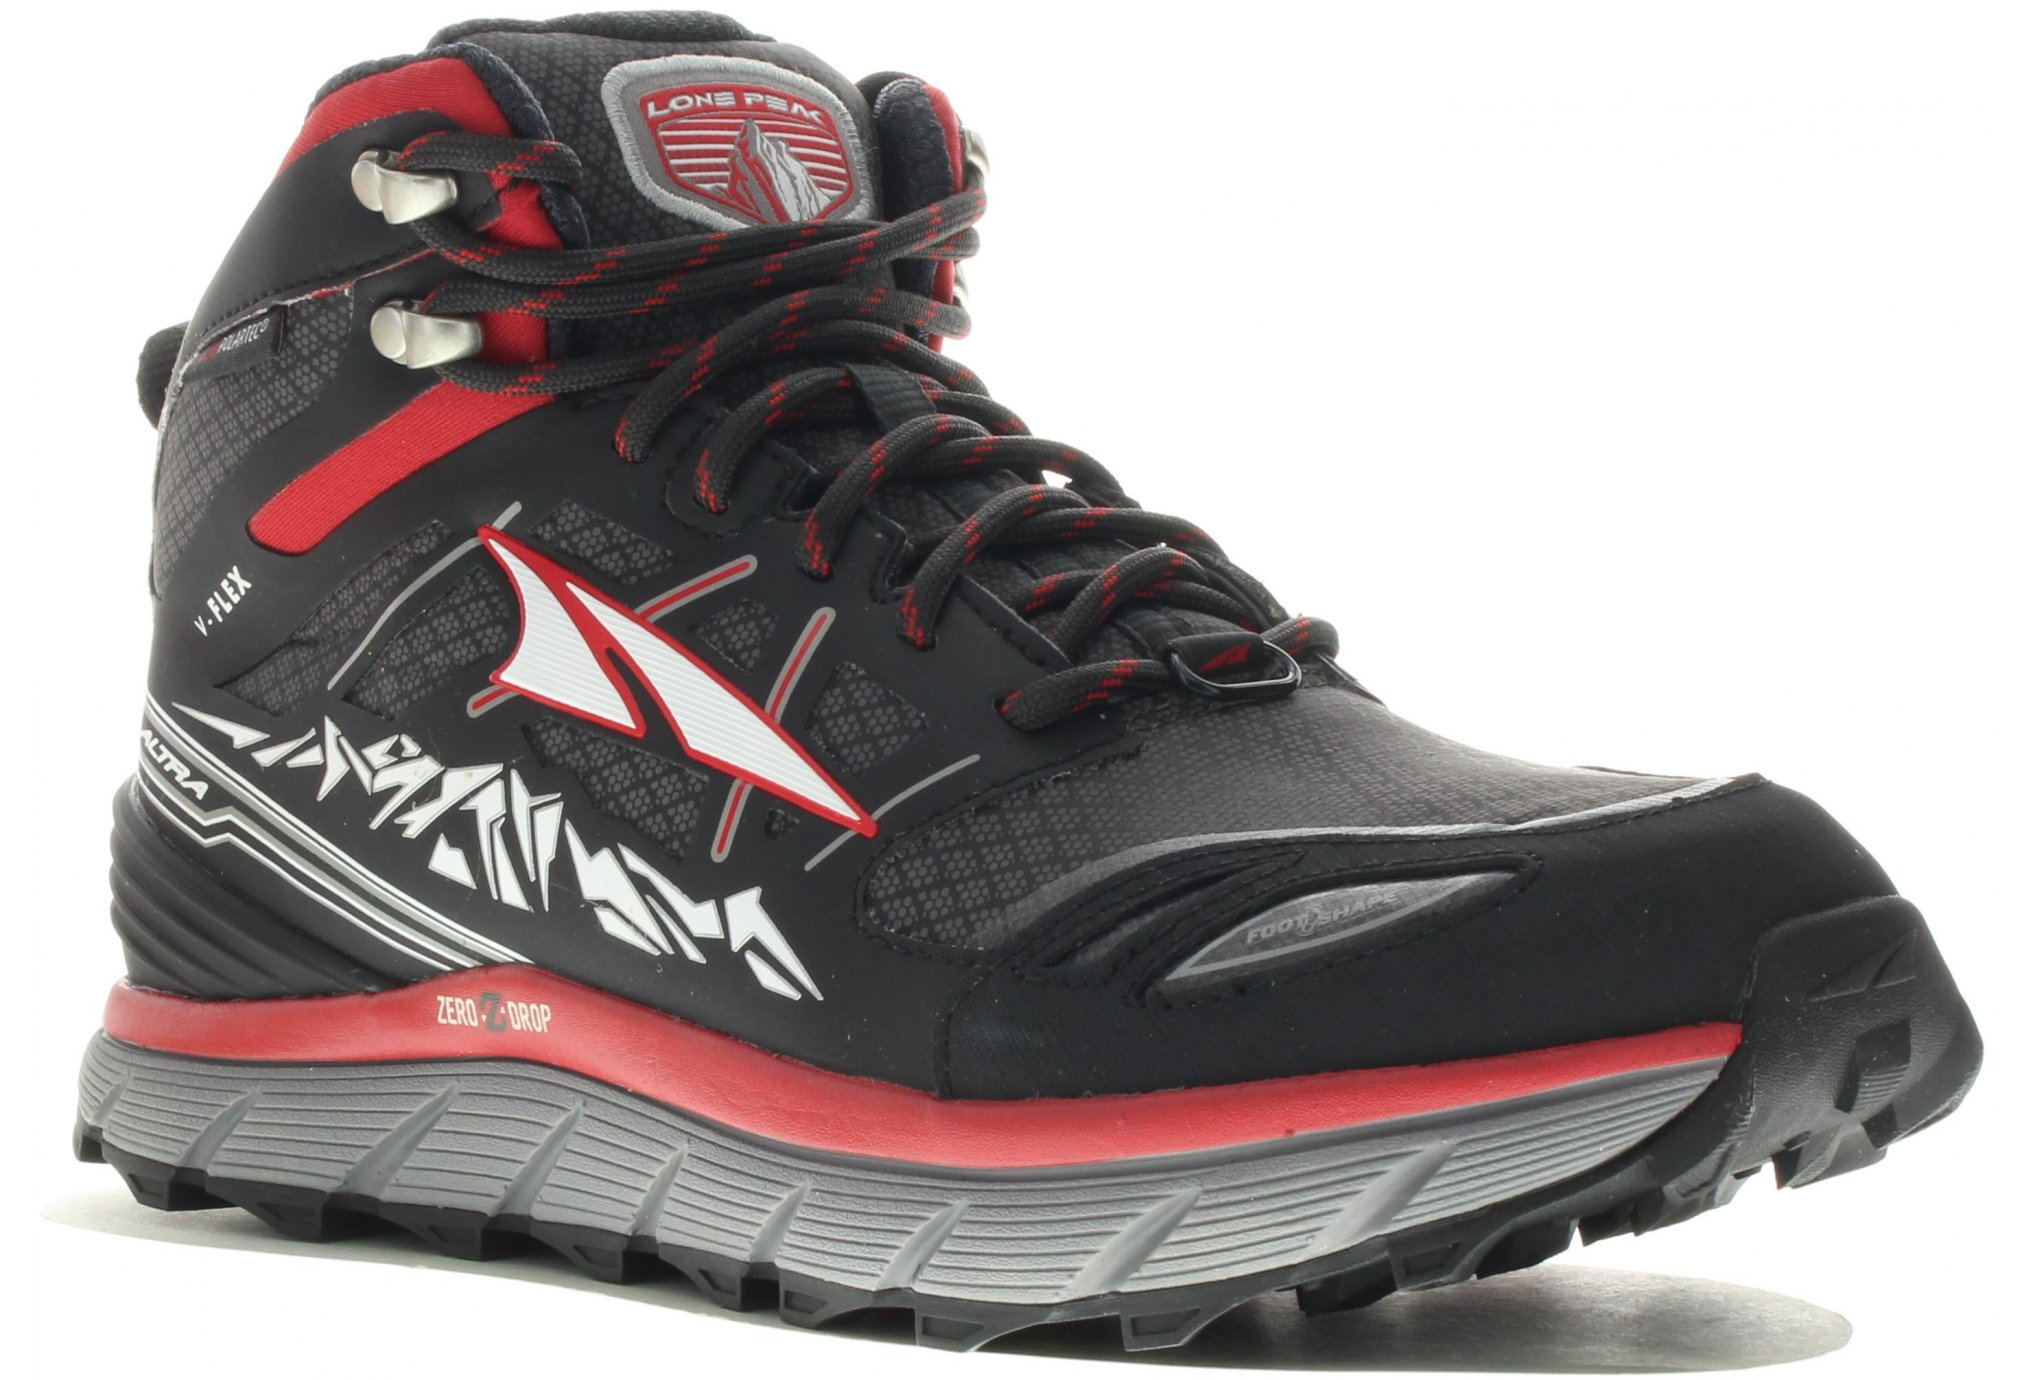 Altra Lone peak mid neo 3.0 m chaussures homme